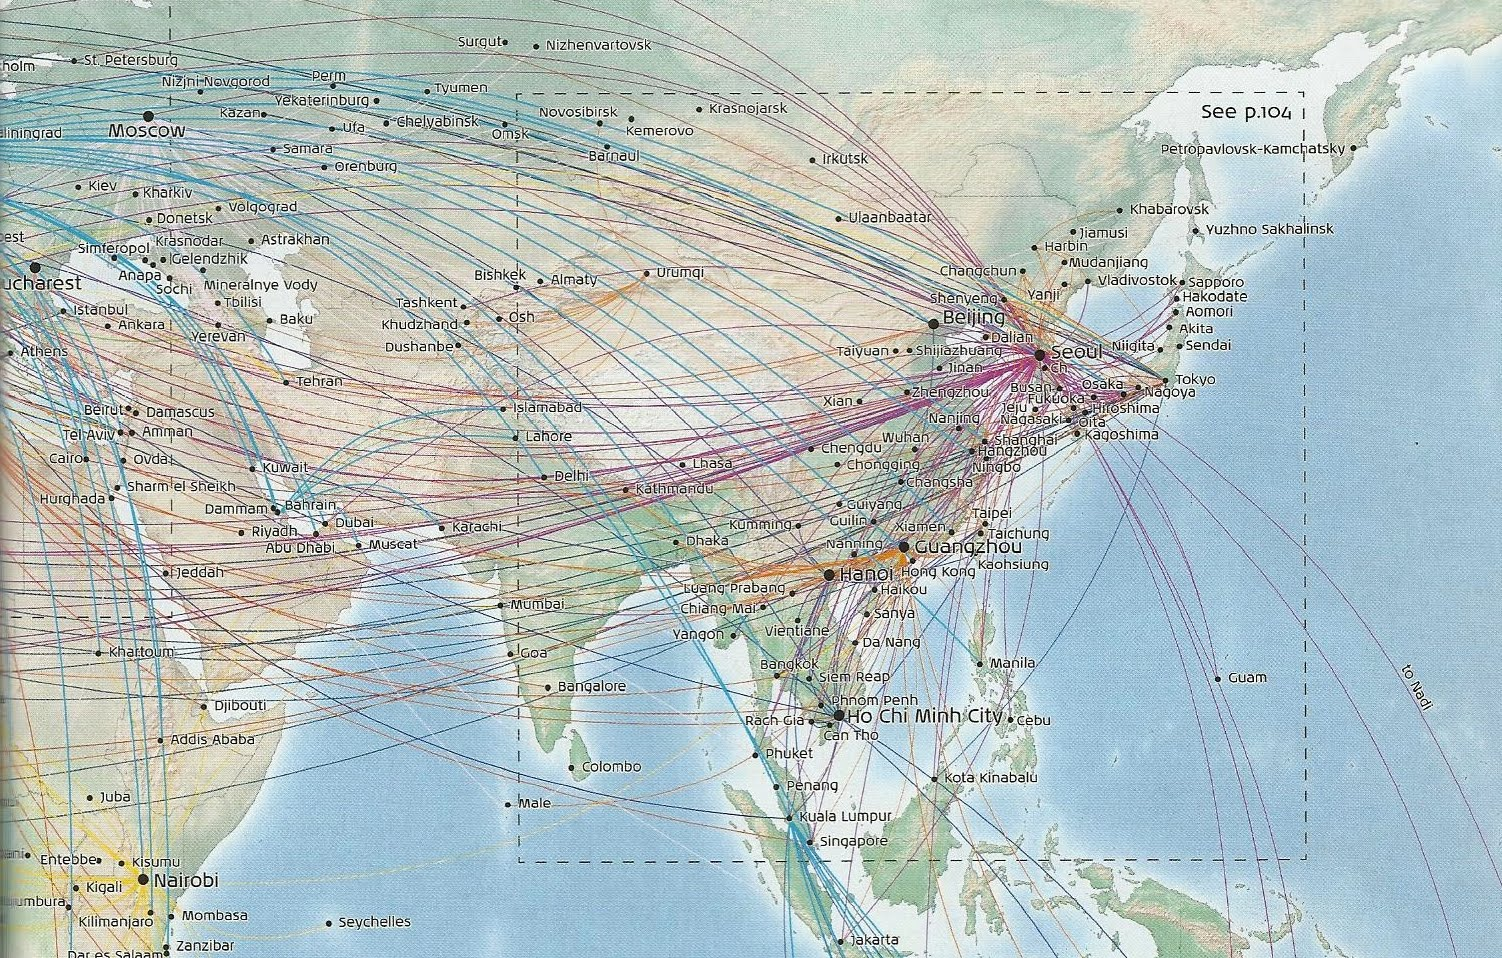 The Timetablist: KLM: The East Asian Routes, October 2011 on malaysia airlines destinations, cargolux route map, envoy air route map, royal jordan route map, air france route map, saudia route map, aegean route map, china eastern route map, alitalia route map, klm cityhopper, ba cityflyer route map, air macau route map, key lime air route map, air niugini route map, delta air lines destinations, air france-klm, iberia destinations, independence air route map, cityjet route map, luxair route map, klm royal dutch airlines, cathay pacific destinations, island air route map, biman route map, eastern air lines route map, tap air portugal route map,